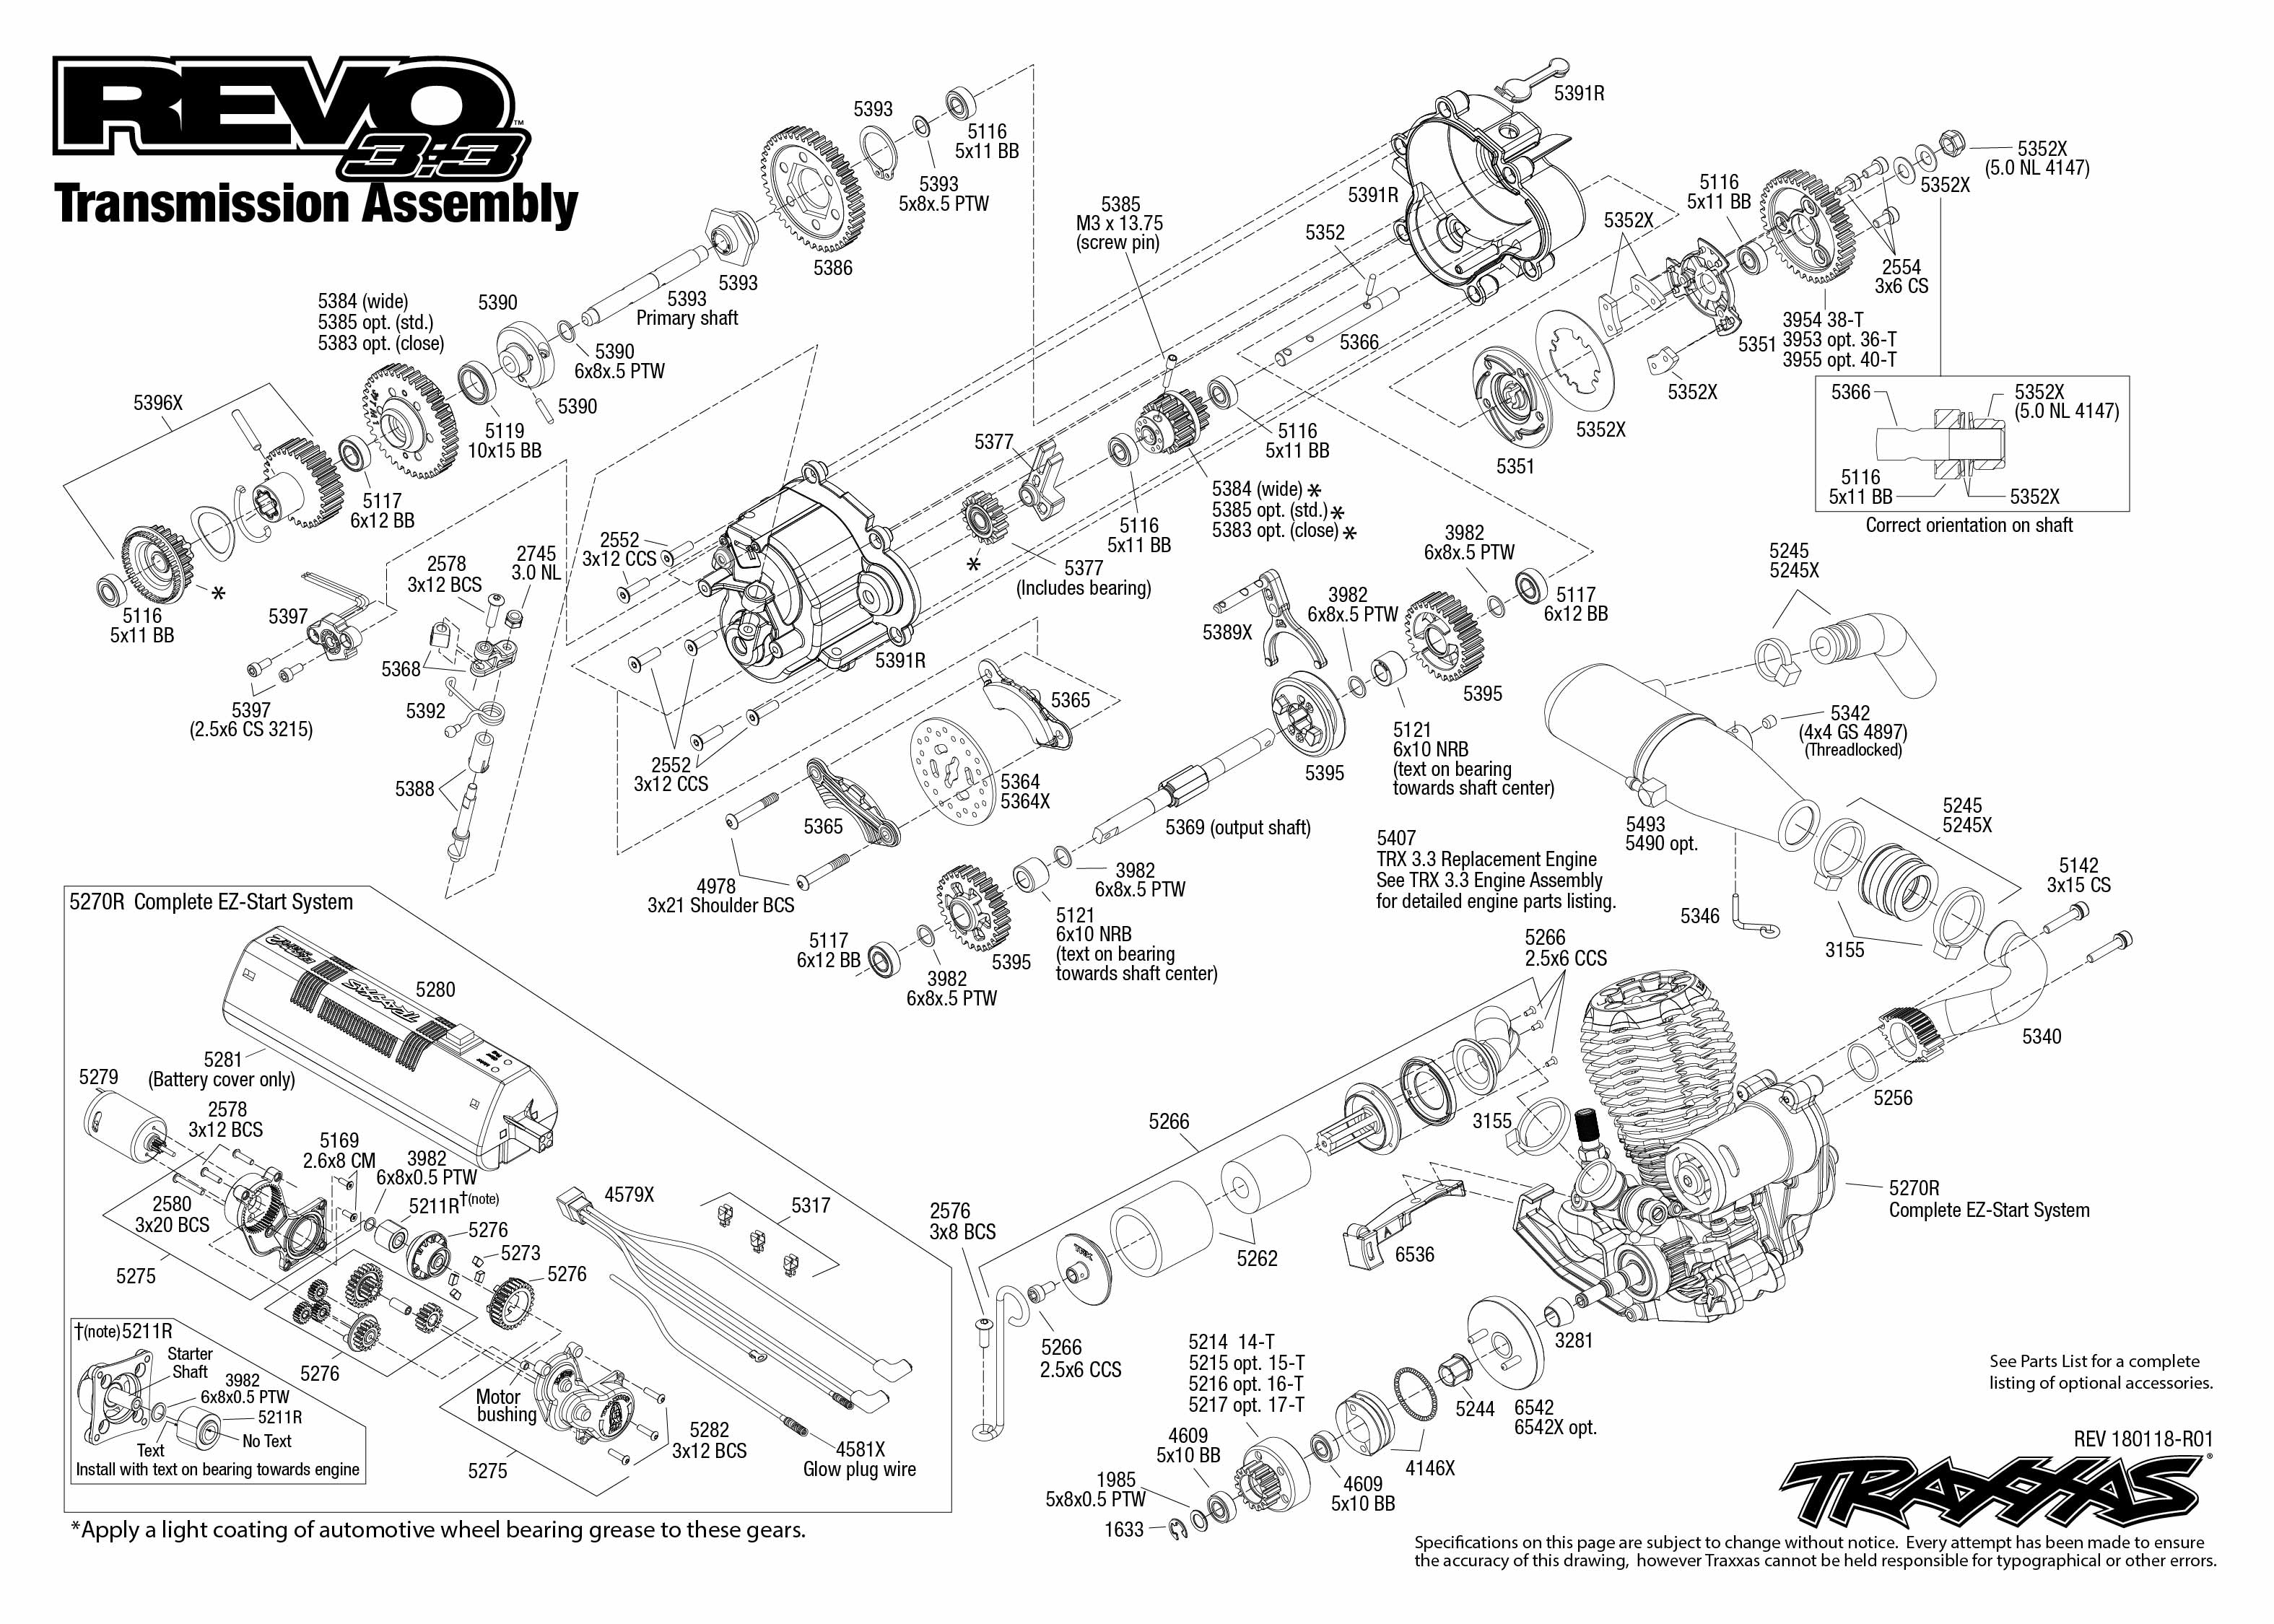 Revo 3 3 3 Transmission Assembly Exploded View